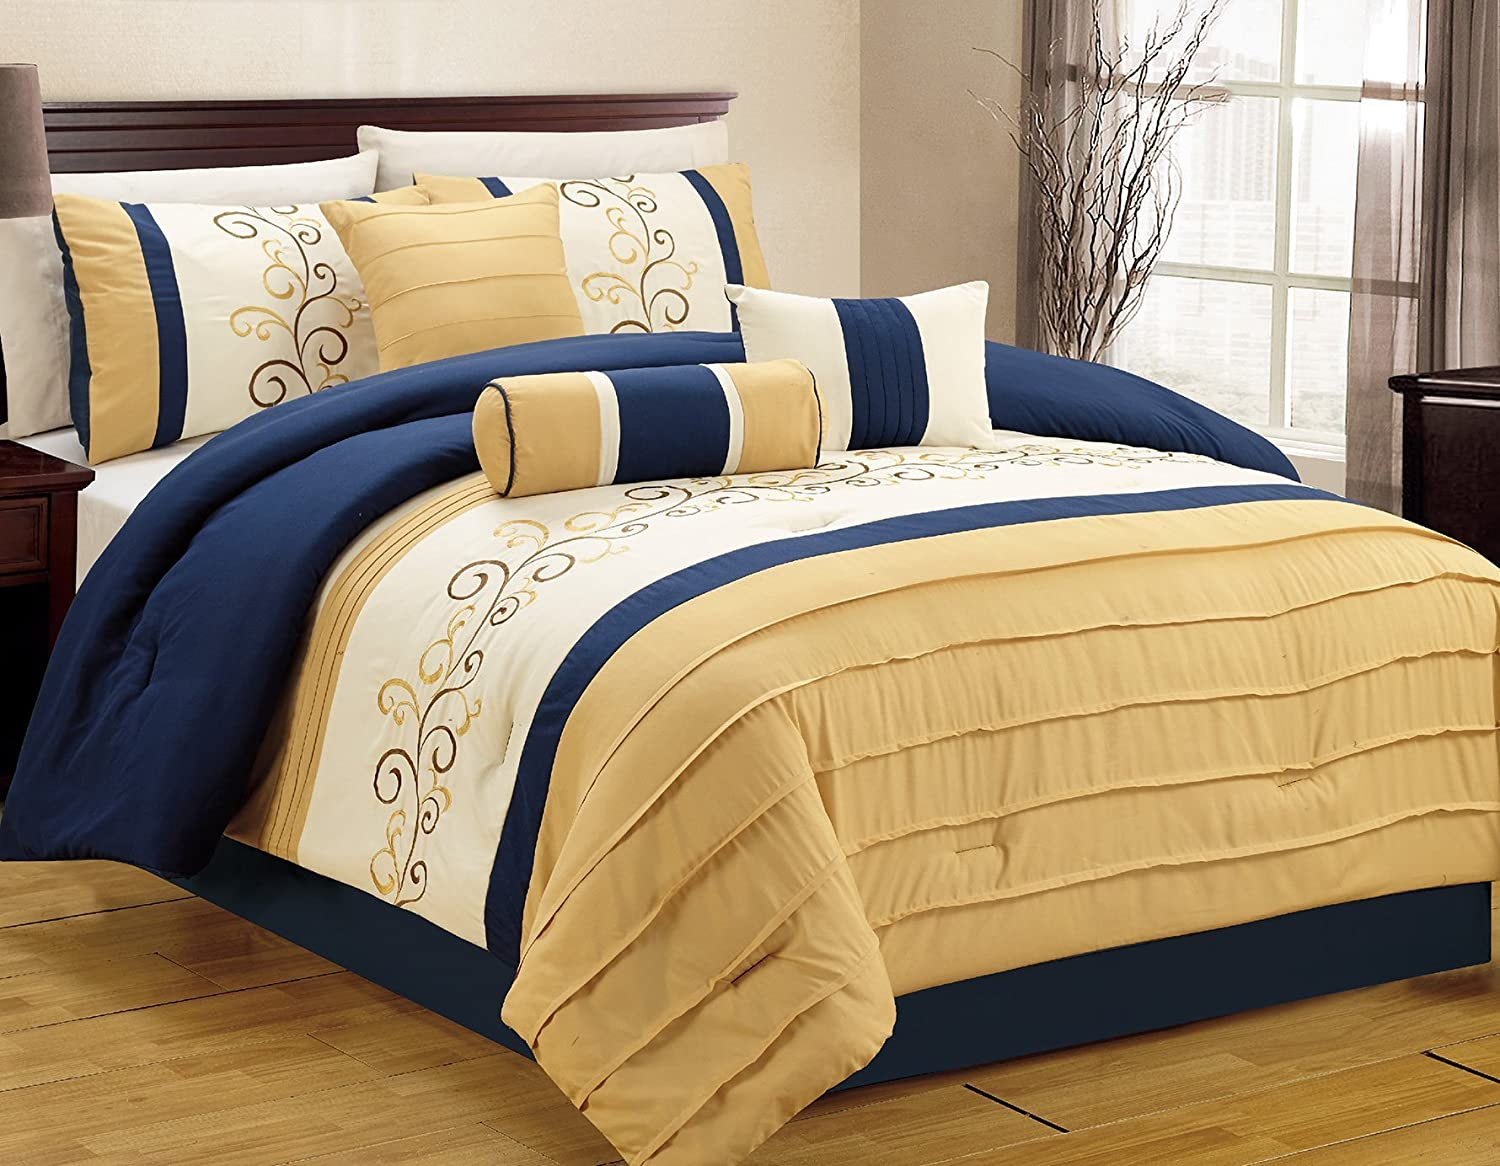 Closeout 7 Piece Luxury Embroidery Bed in bag Comforter Set Cal King, Blue / Yellow